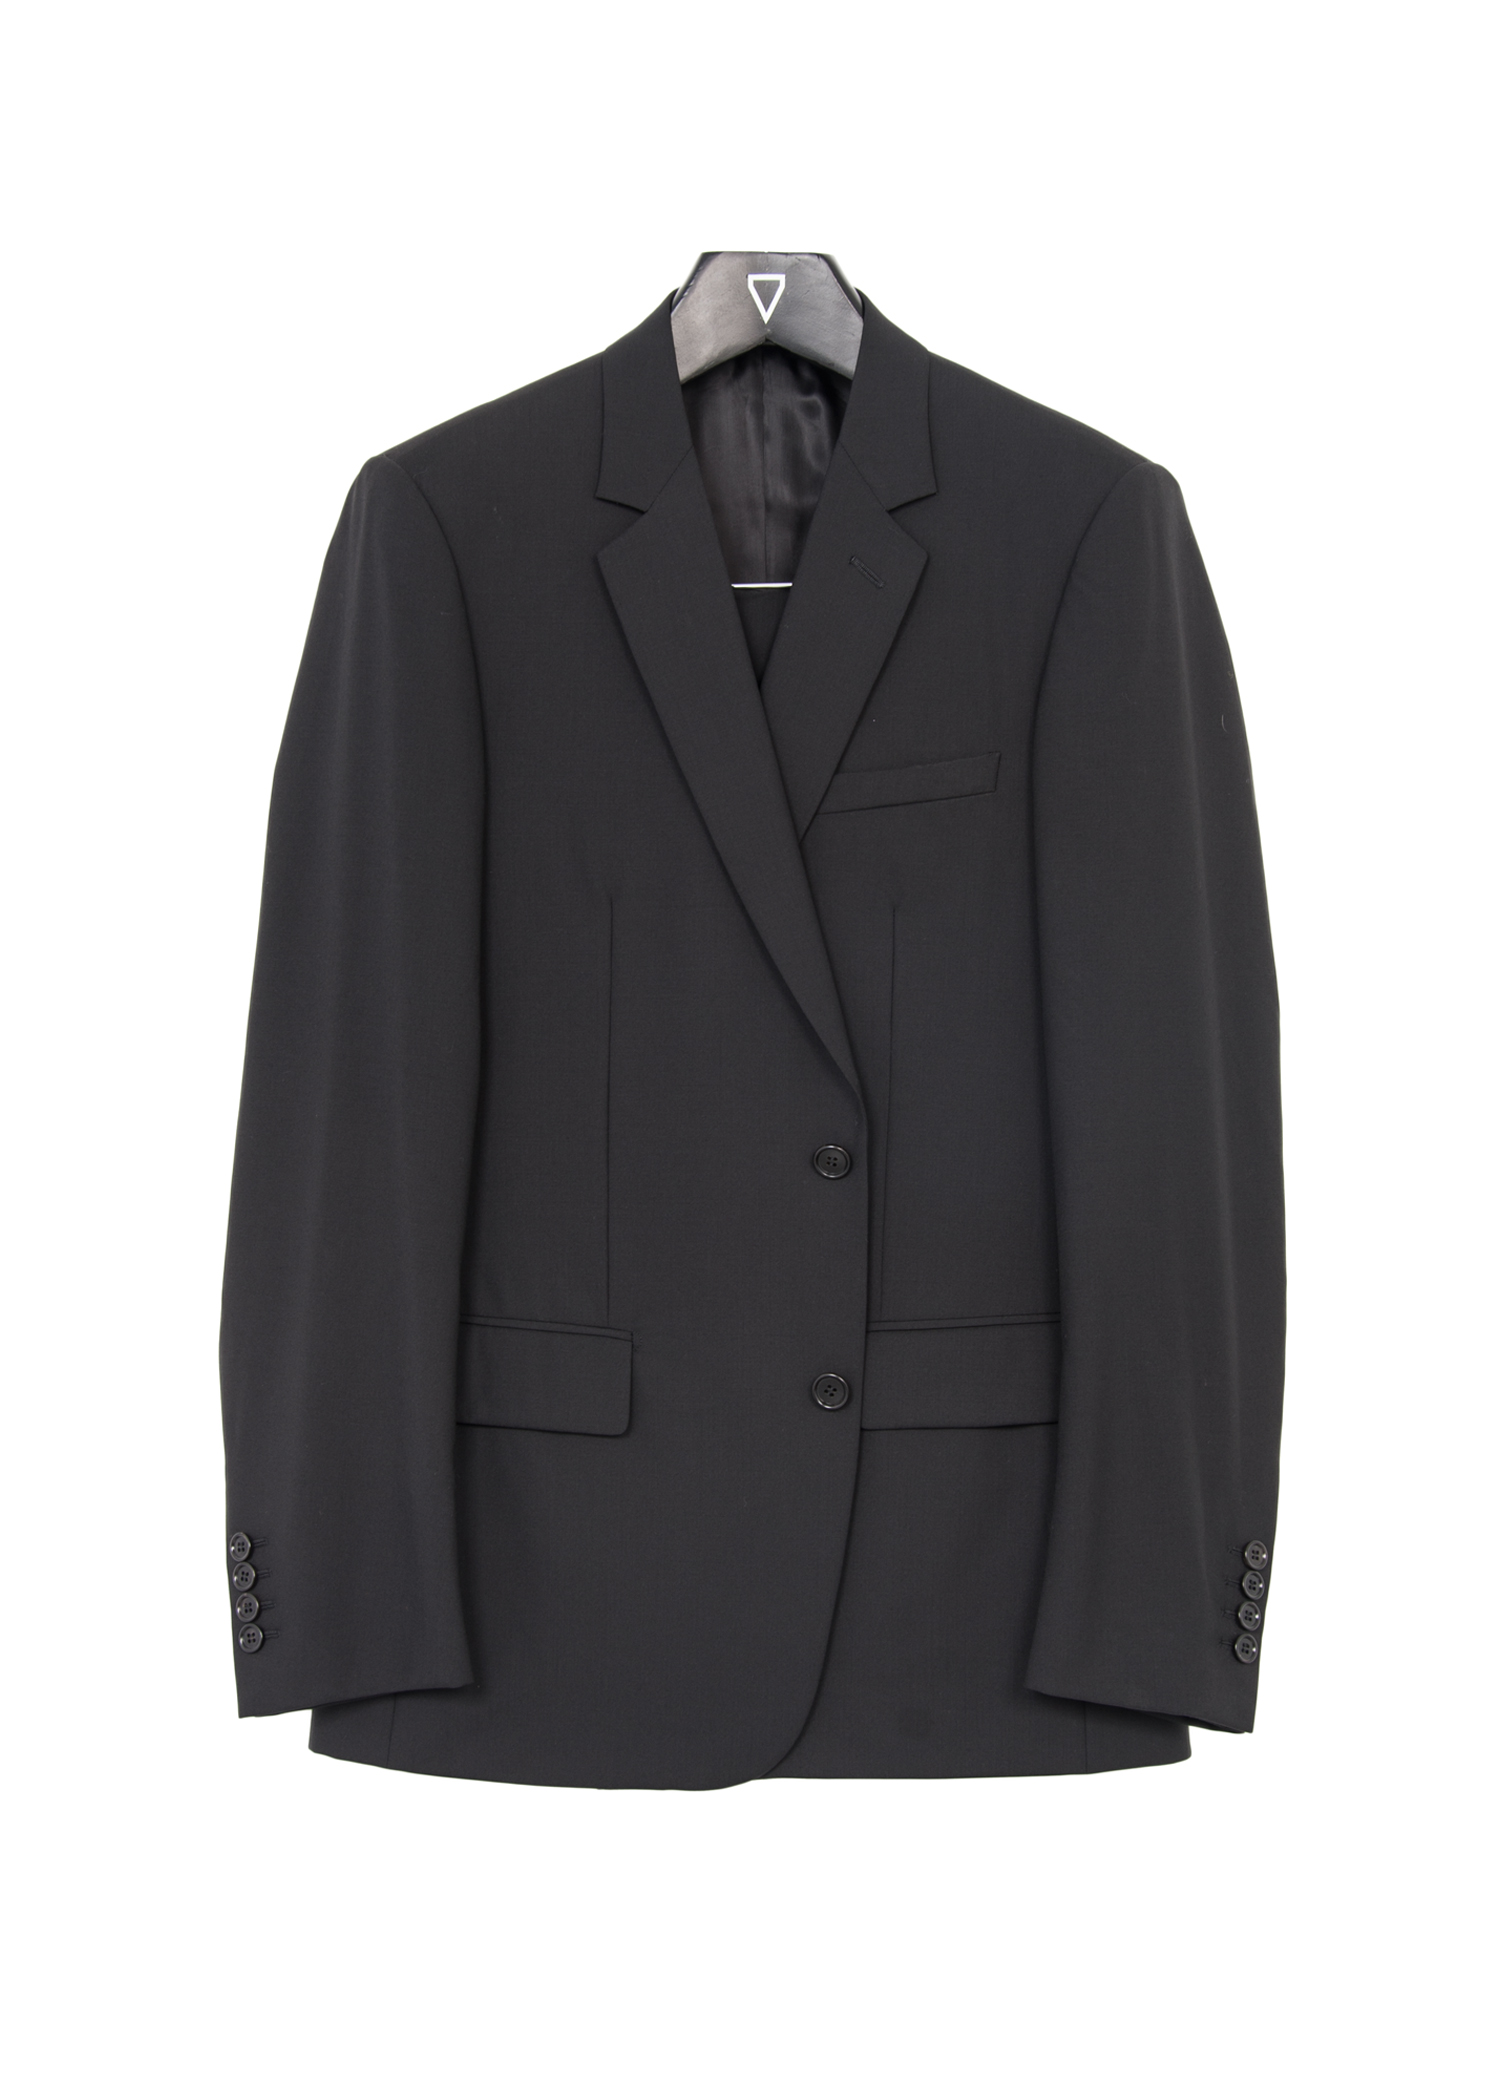 "40 DIOR HOMME SUIT ""DIOR-S02-A"""